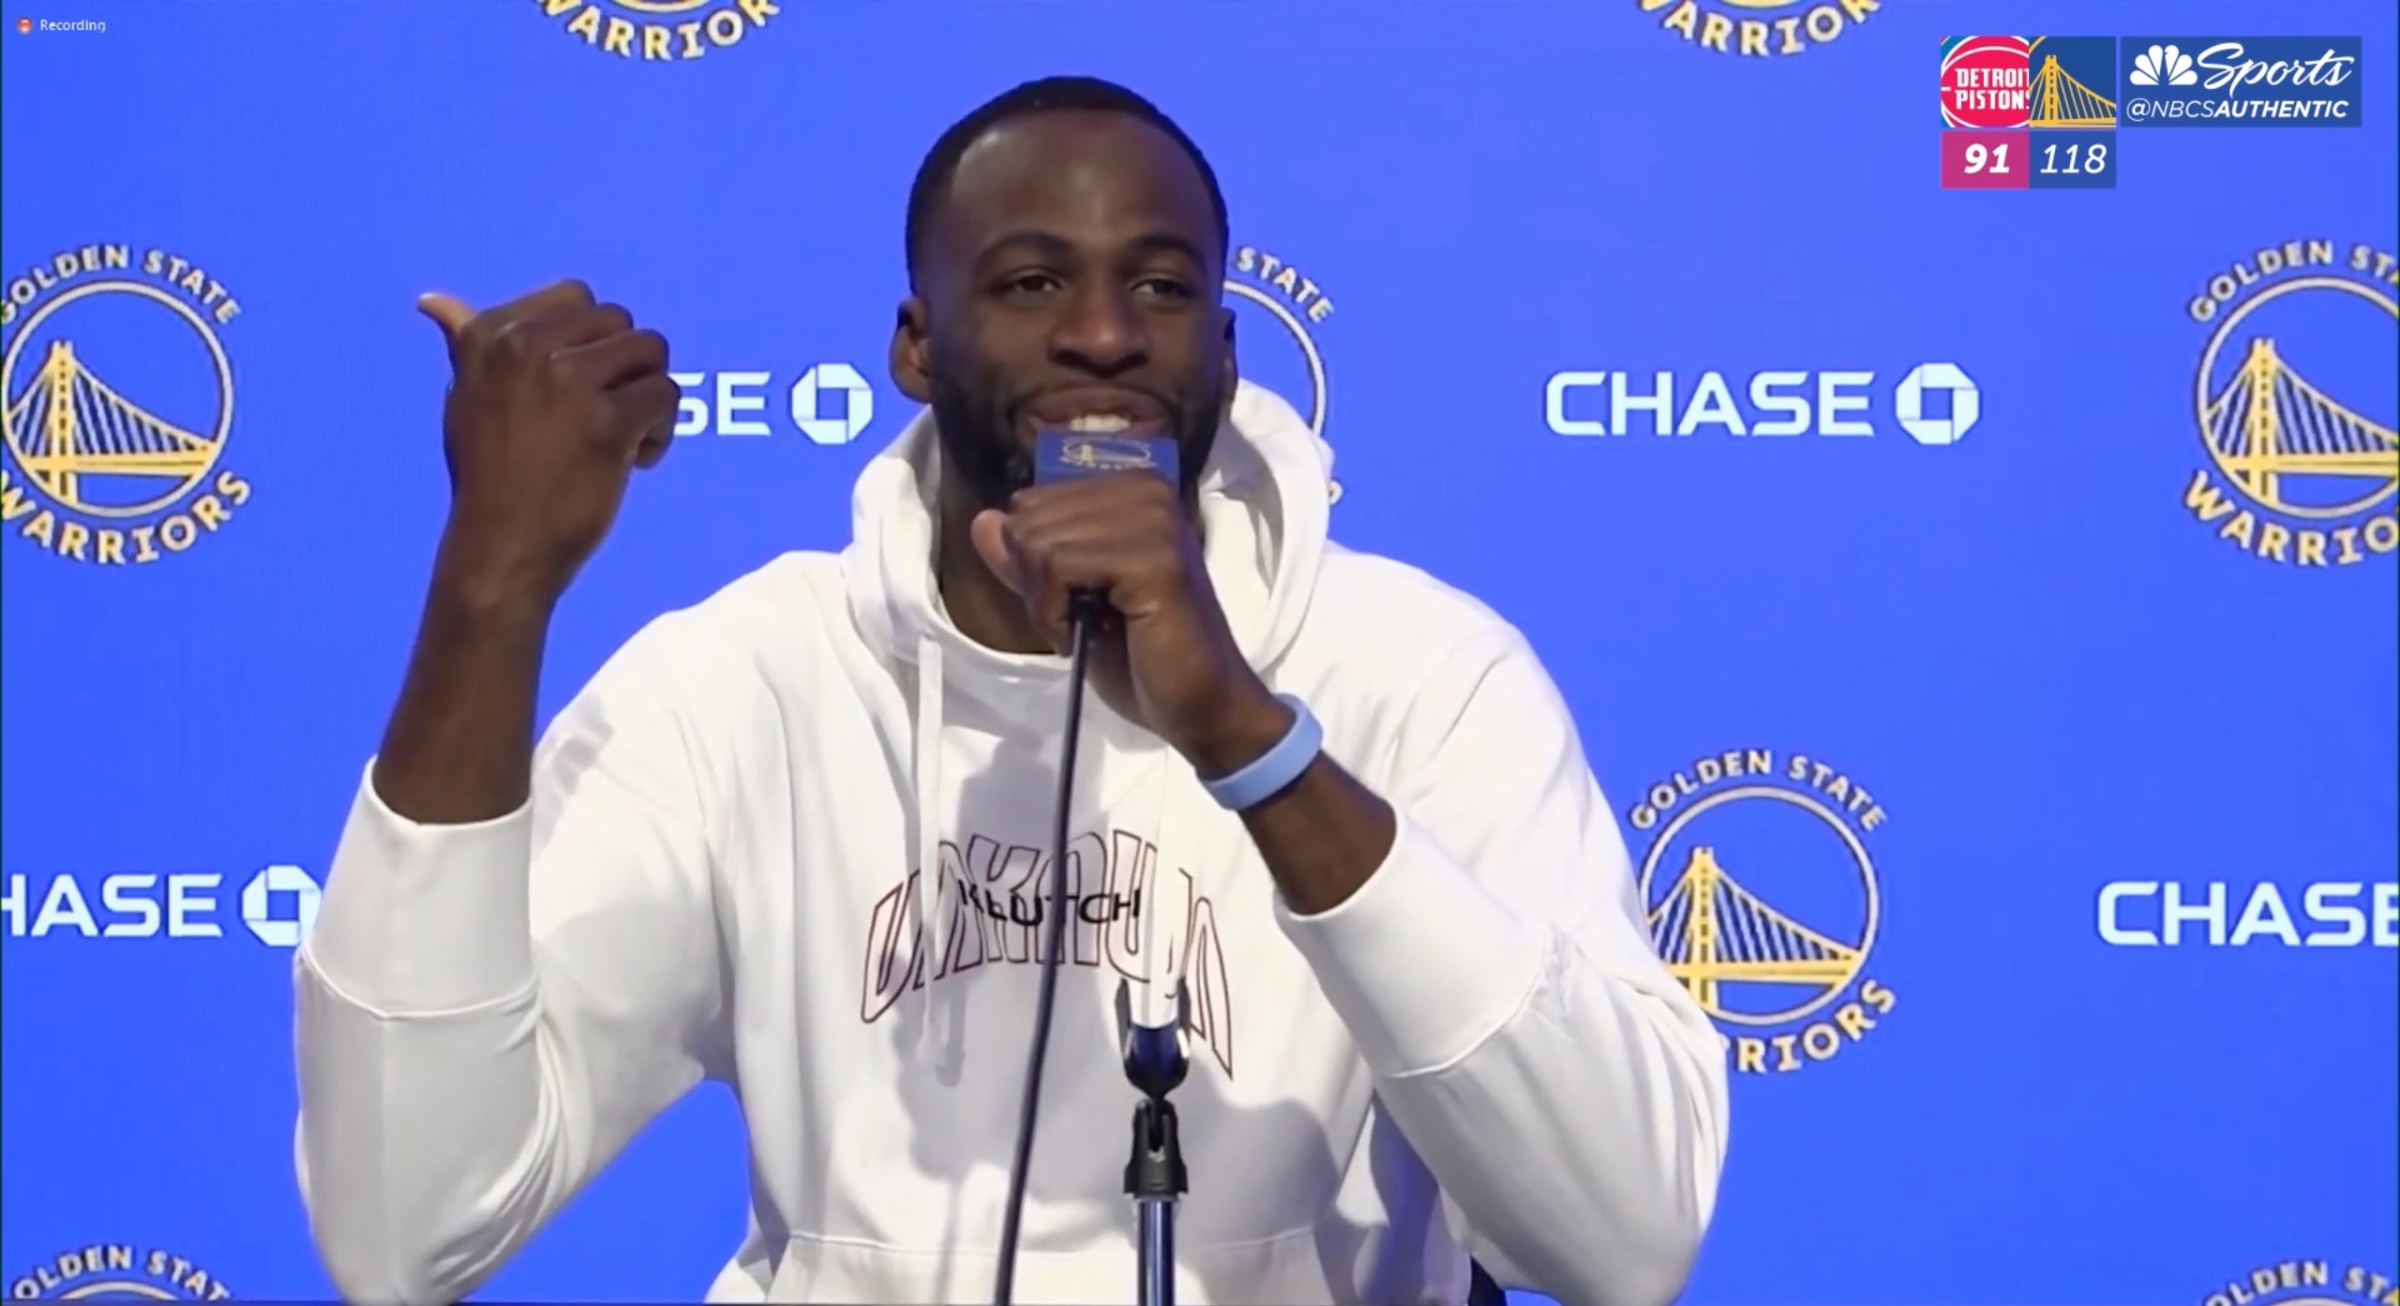 Draymond Green in his postgame press conference after the Warriors beat the Pistons 118-91 on Saturday, January 30.